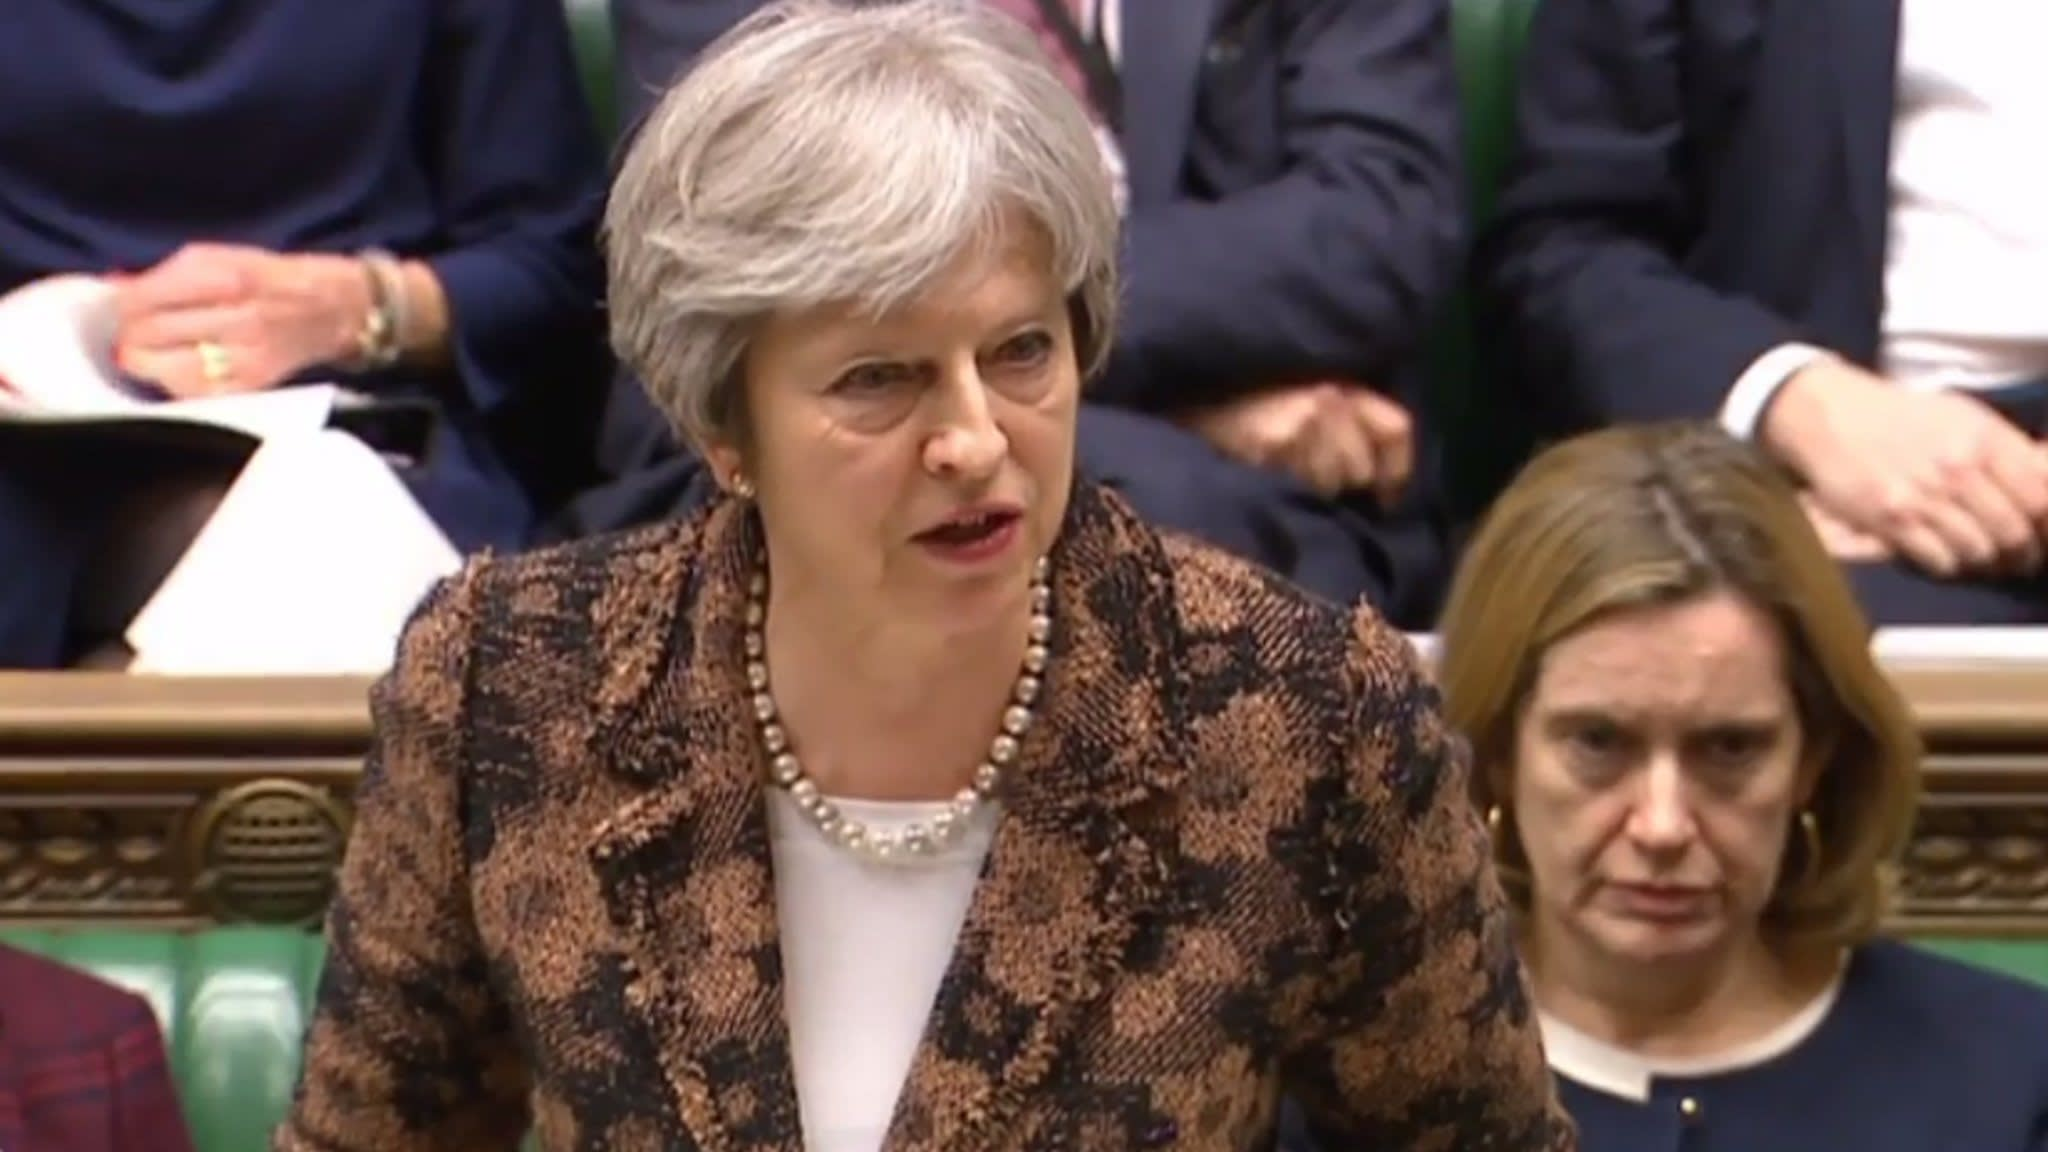 Russia accused by May over 'reckless' nerve agent attack in Britain